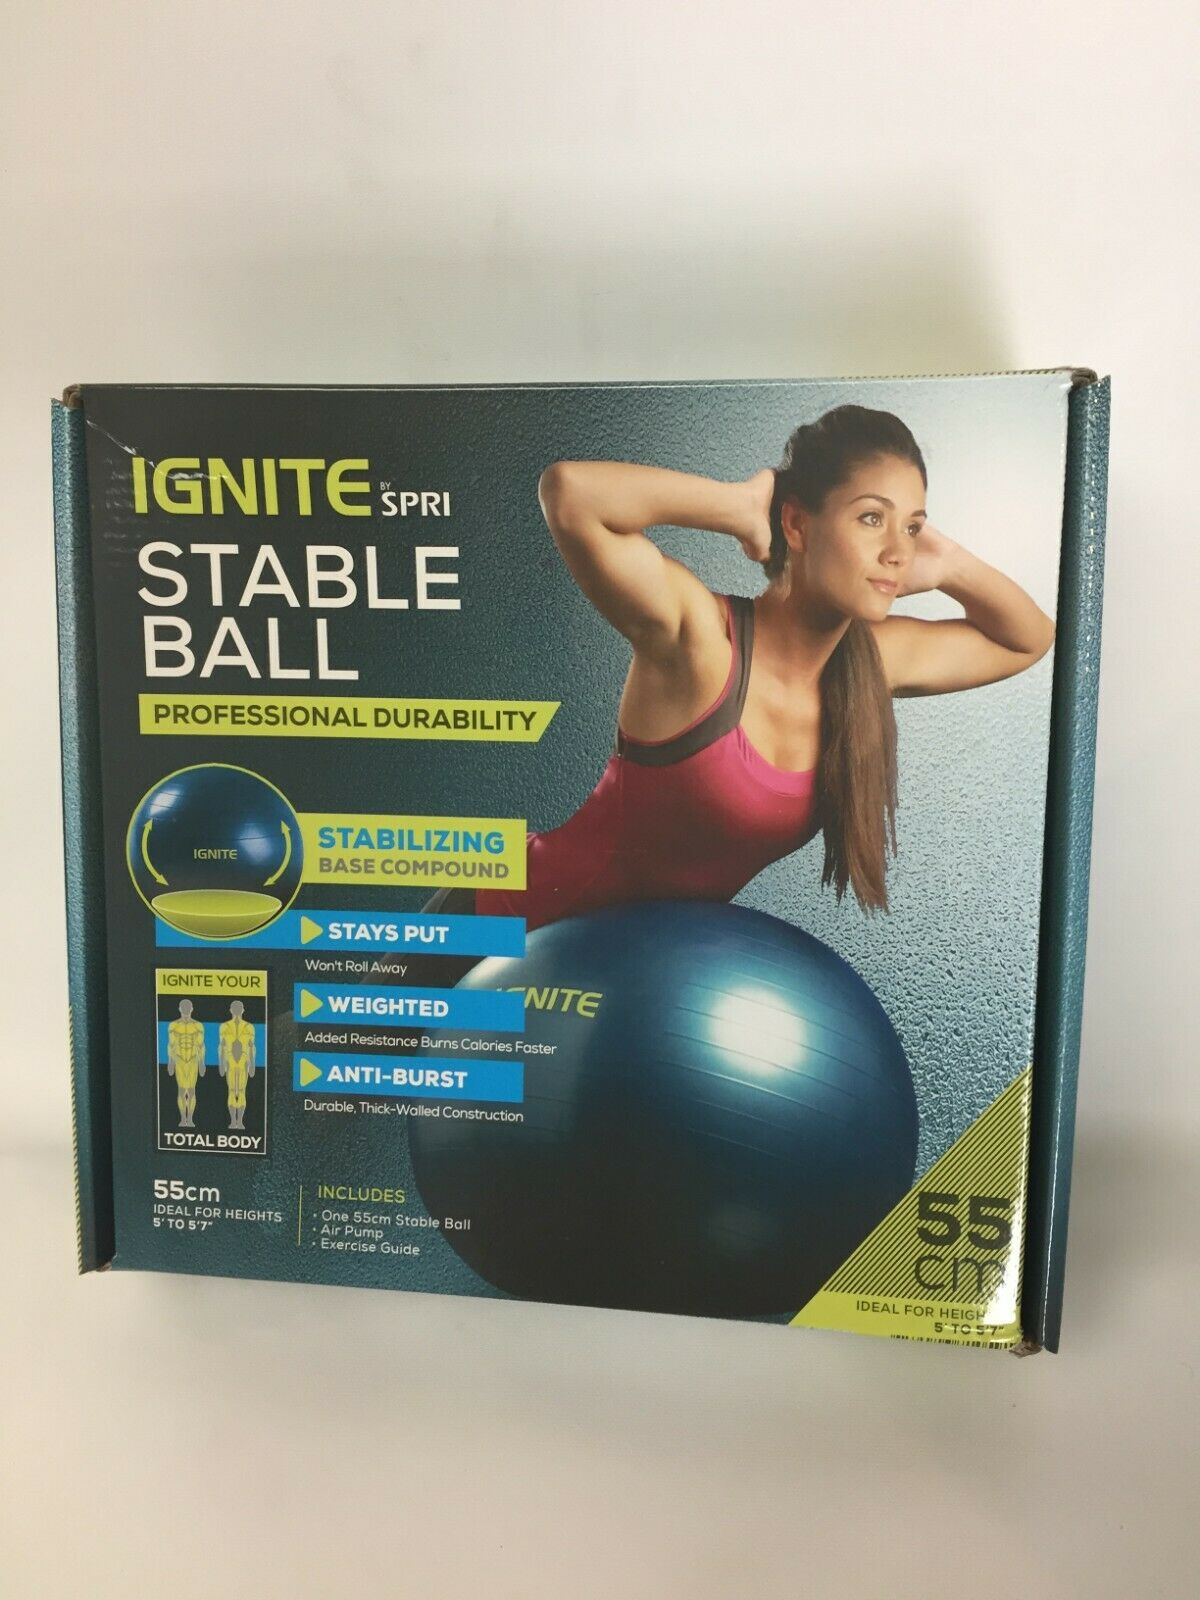 IGNITE By SPRI Stable Ball Anti Burst Weighted 55cm, Ideal F